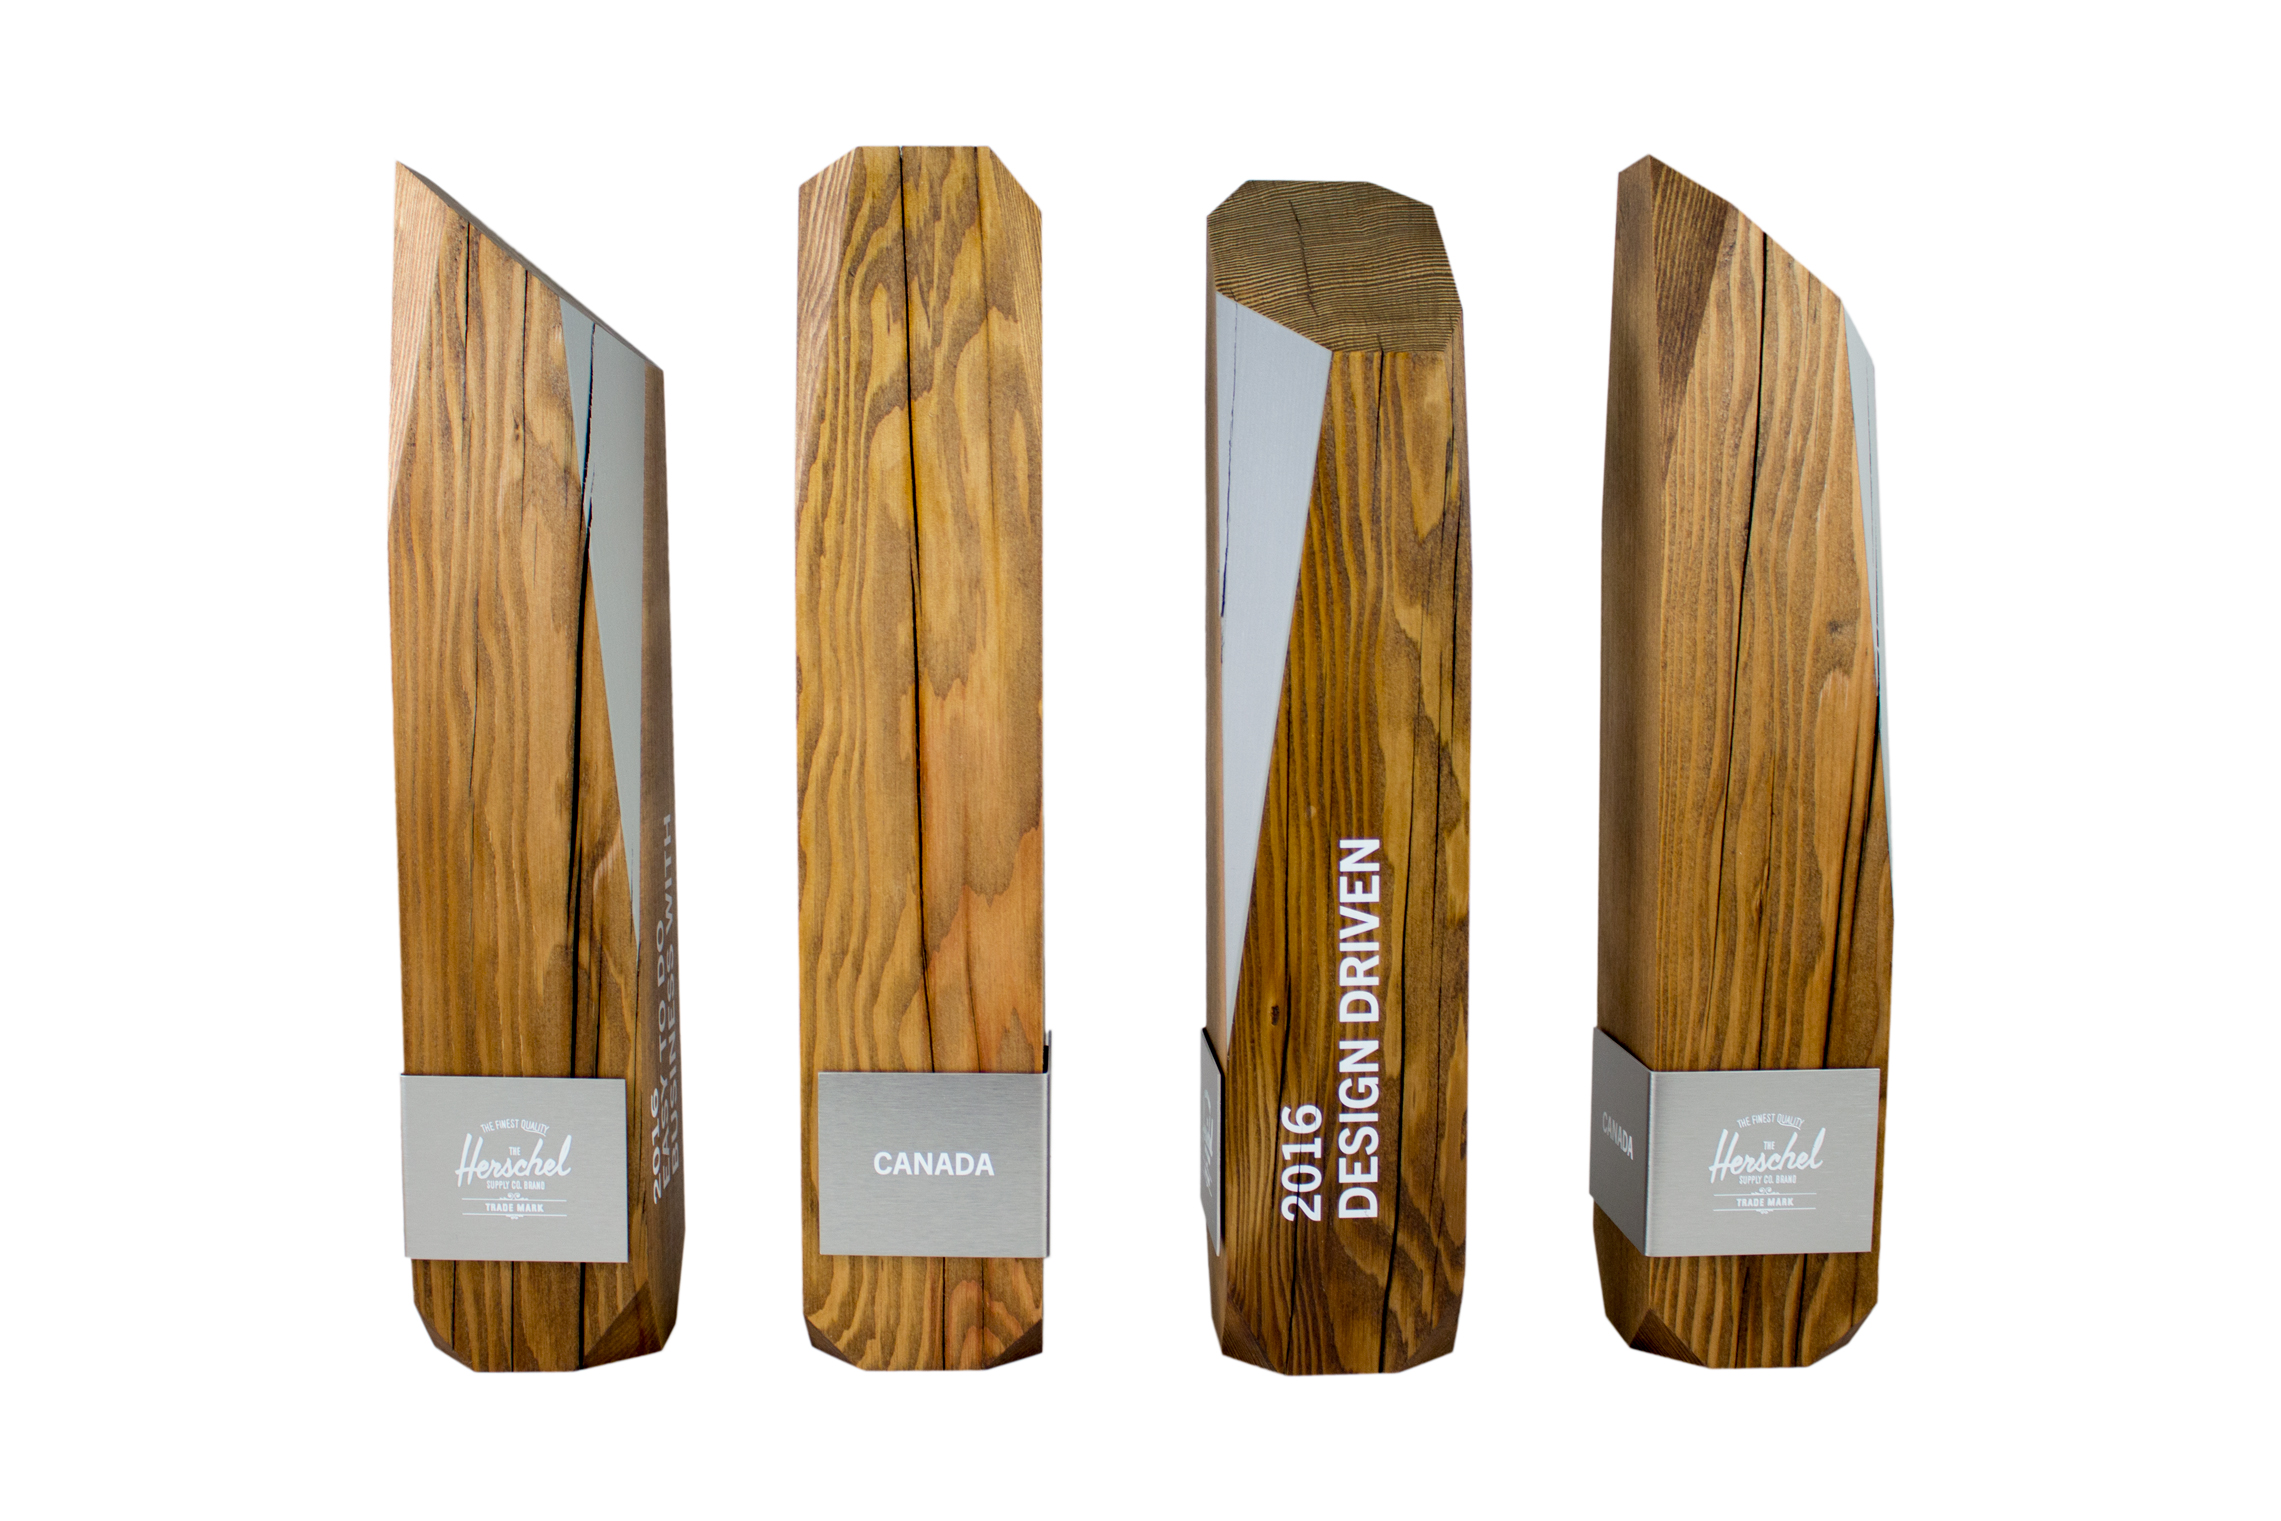 Hershel Canada recovered sustainable douglas fir wood custom award trophy uv print aluminum amazing modern design